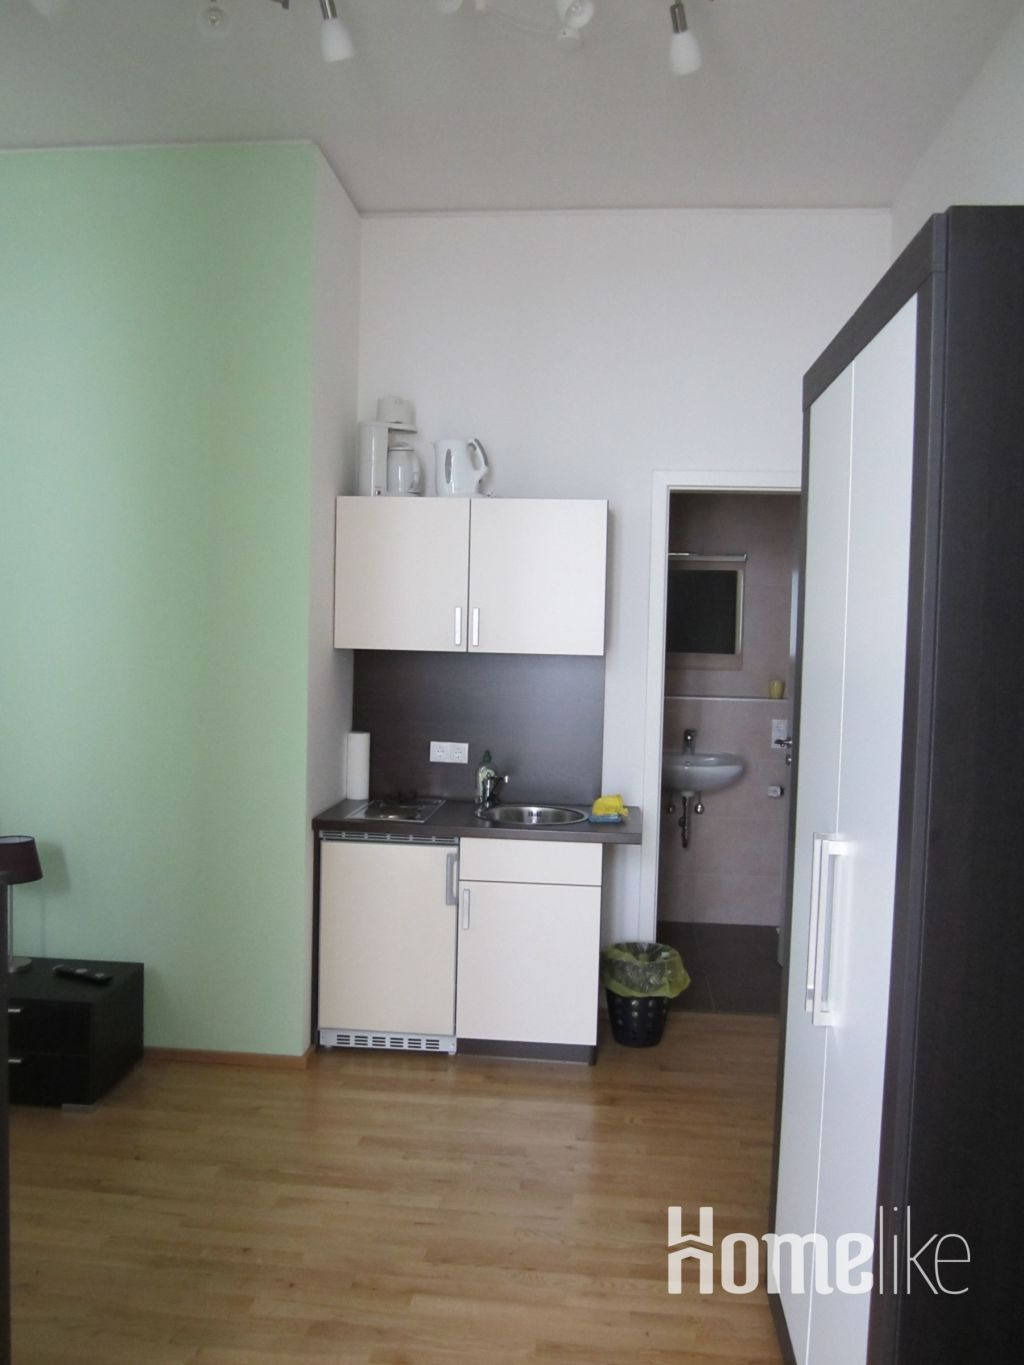 image 5 furnished 1 bedroom Apartment for rent in Bonn, Bonn